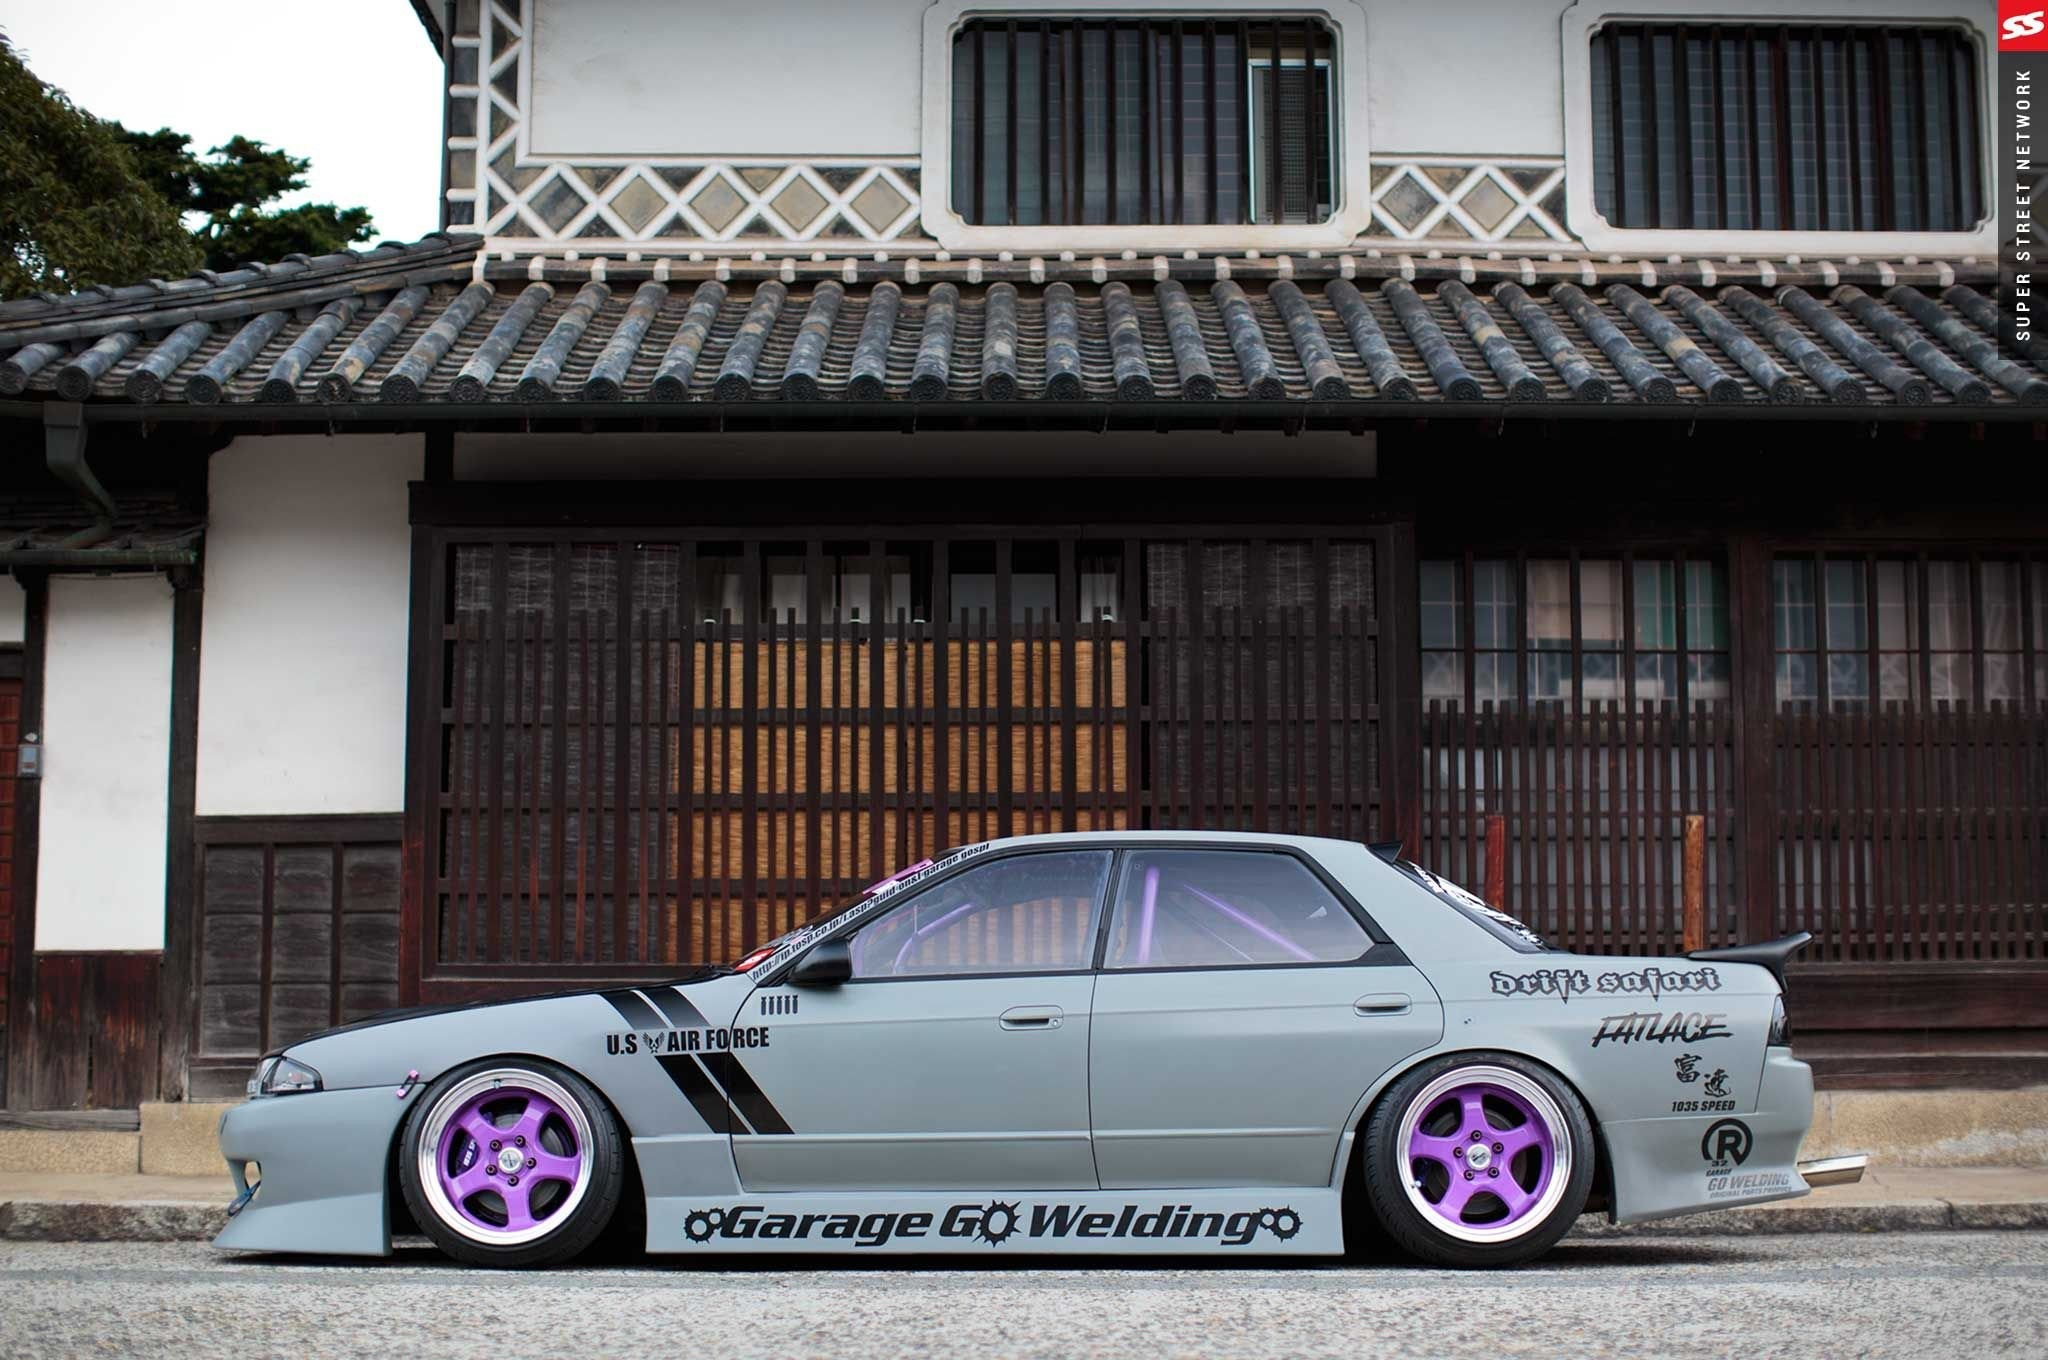 1991 nissan r32 skyline sedan cars modified wallpaper | | 805060  | WallpaperUP